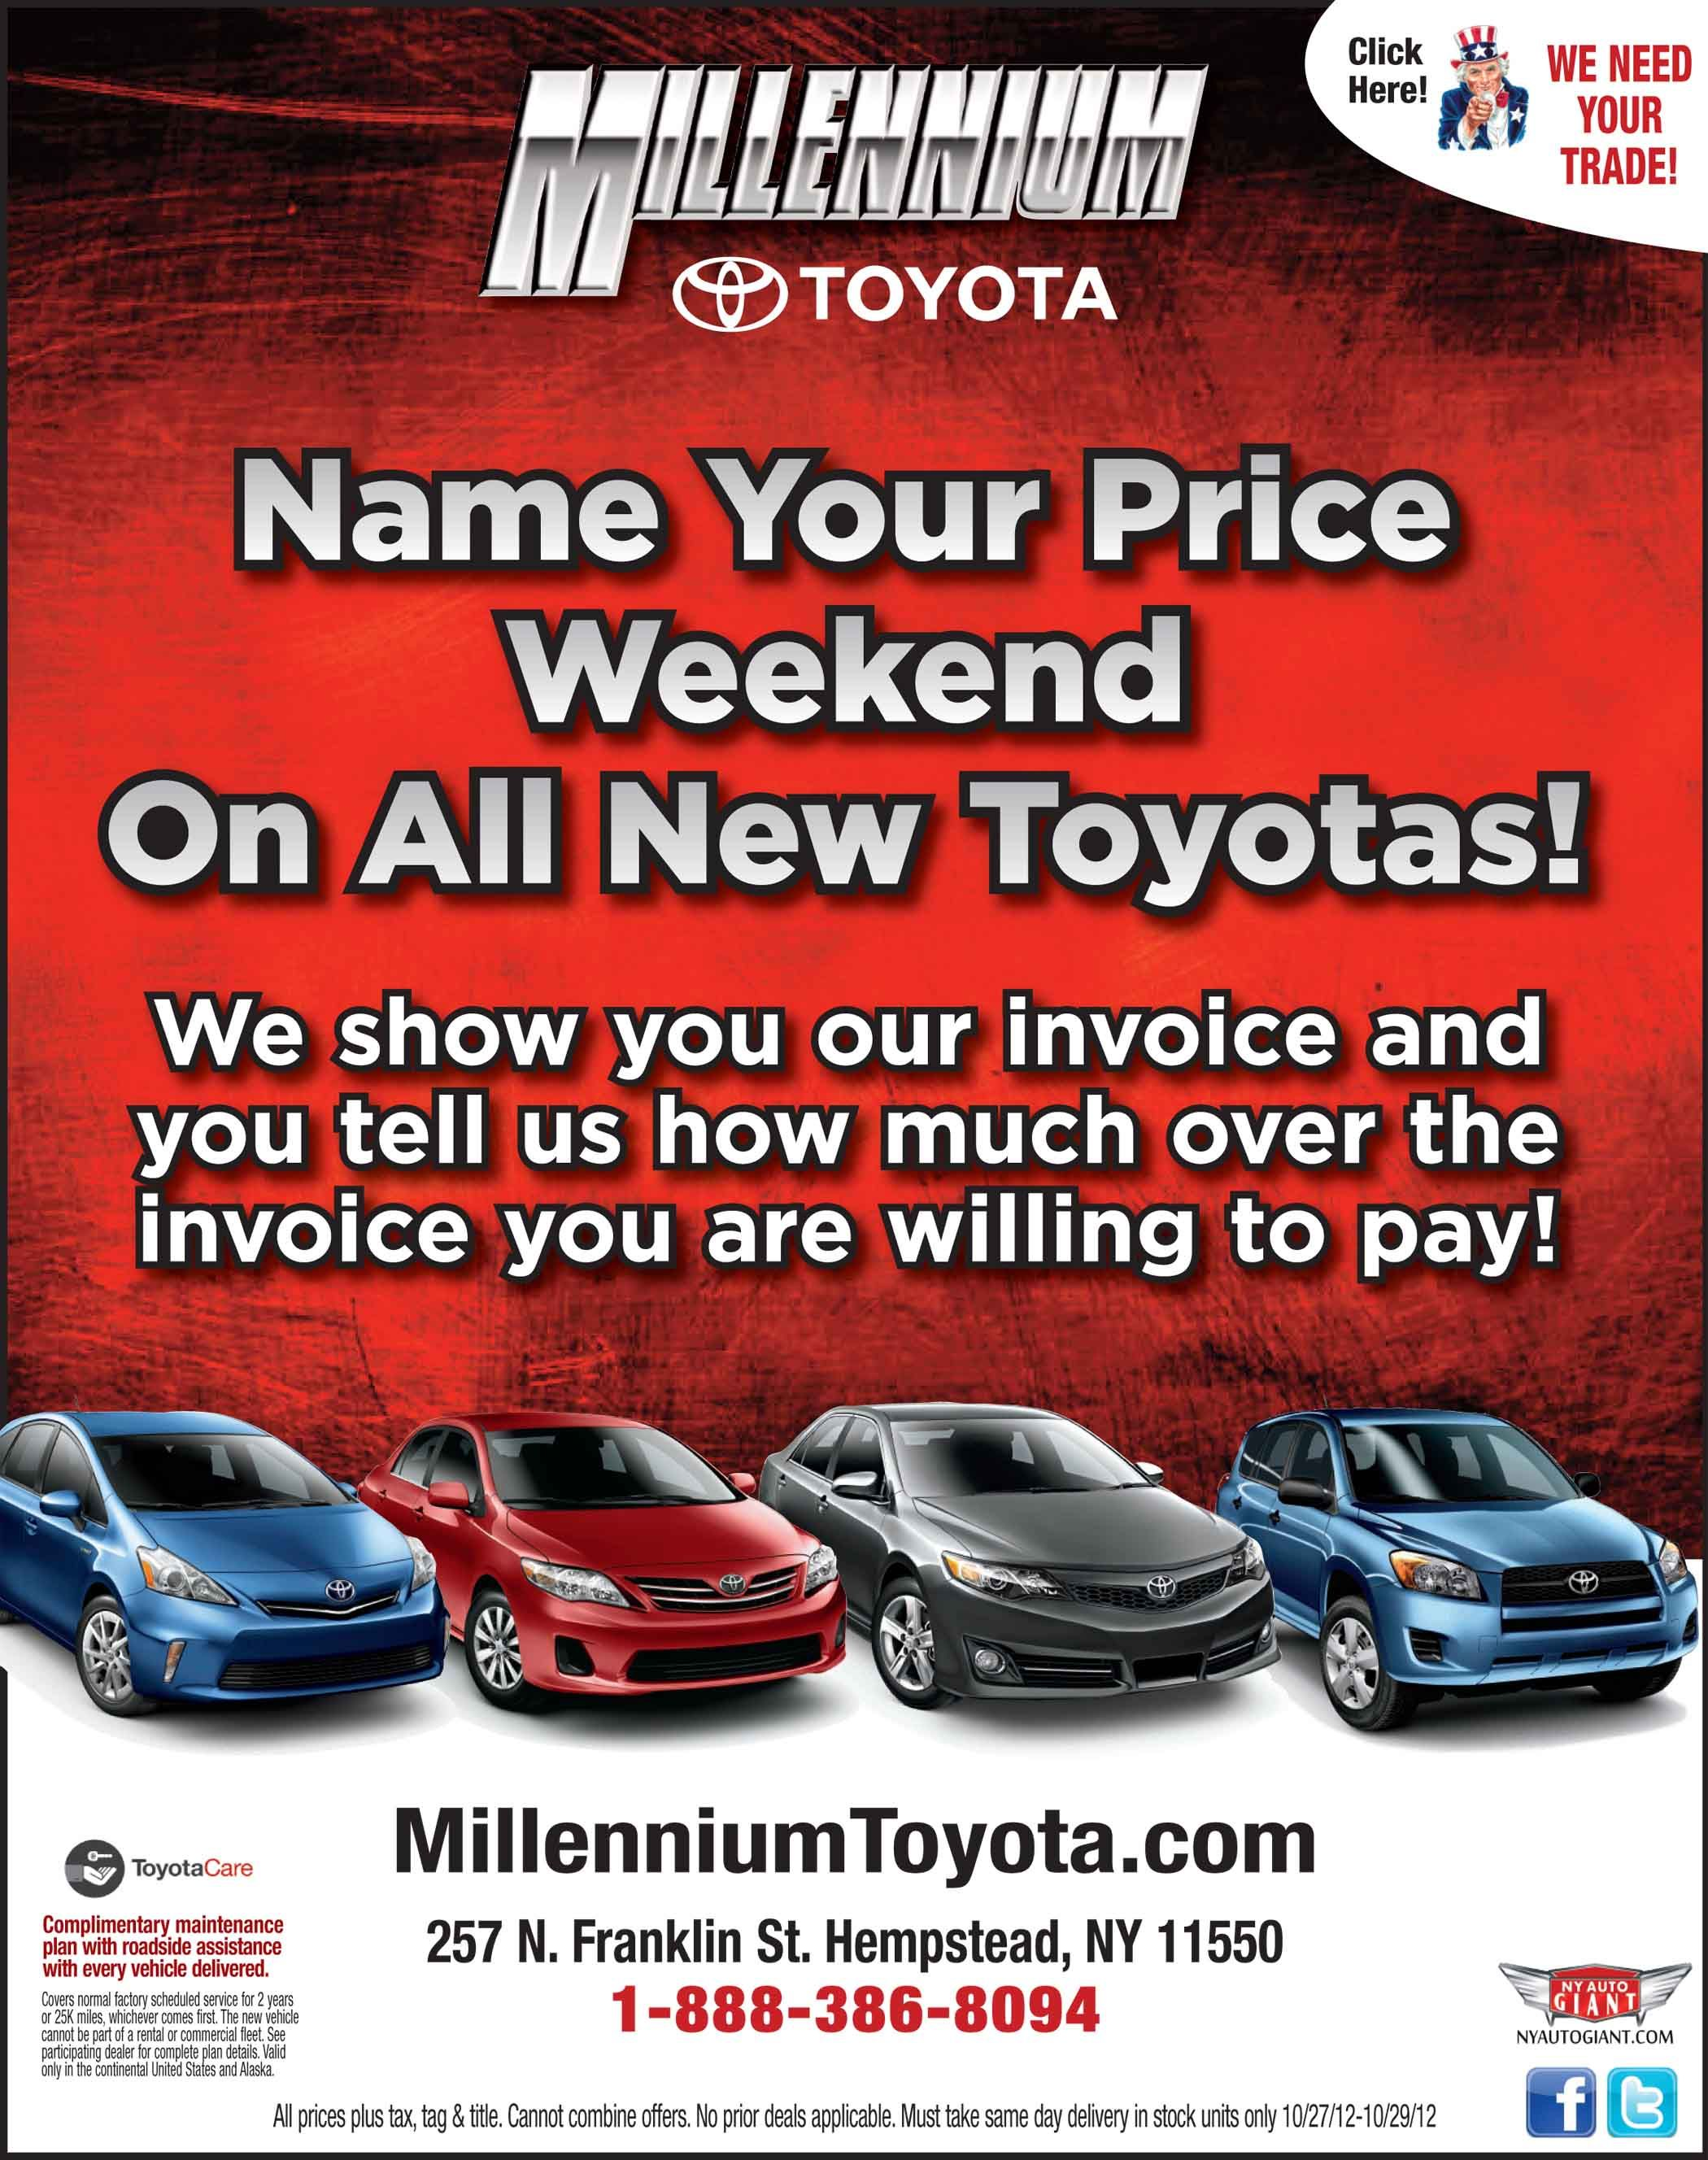 Name Your Price 10 26 12 10 29 12 With Images Toyota Dealers